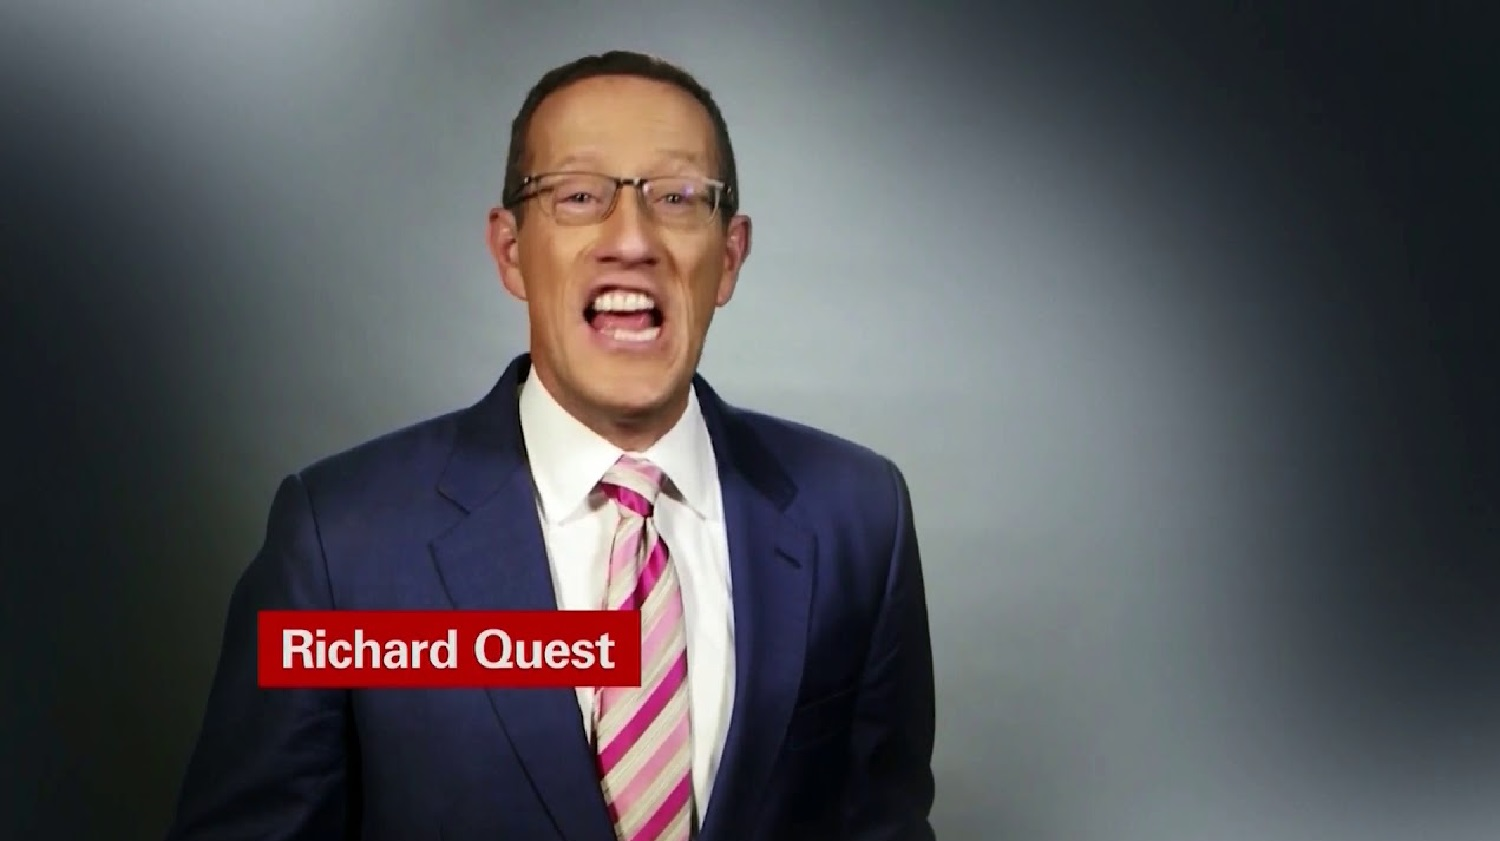 CNN's Richard Quest tests positive for COVID-19